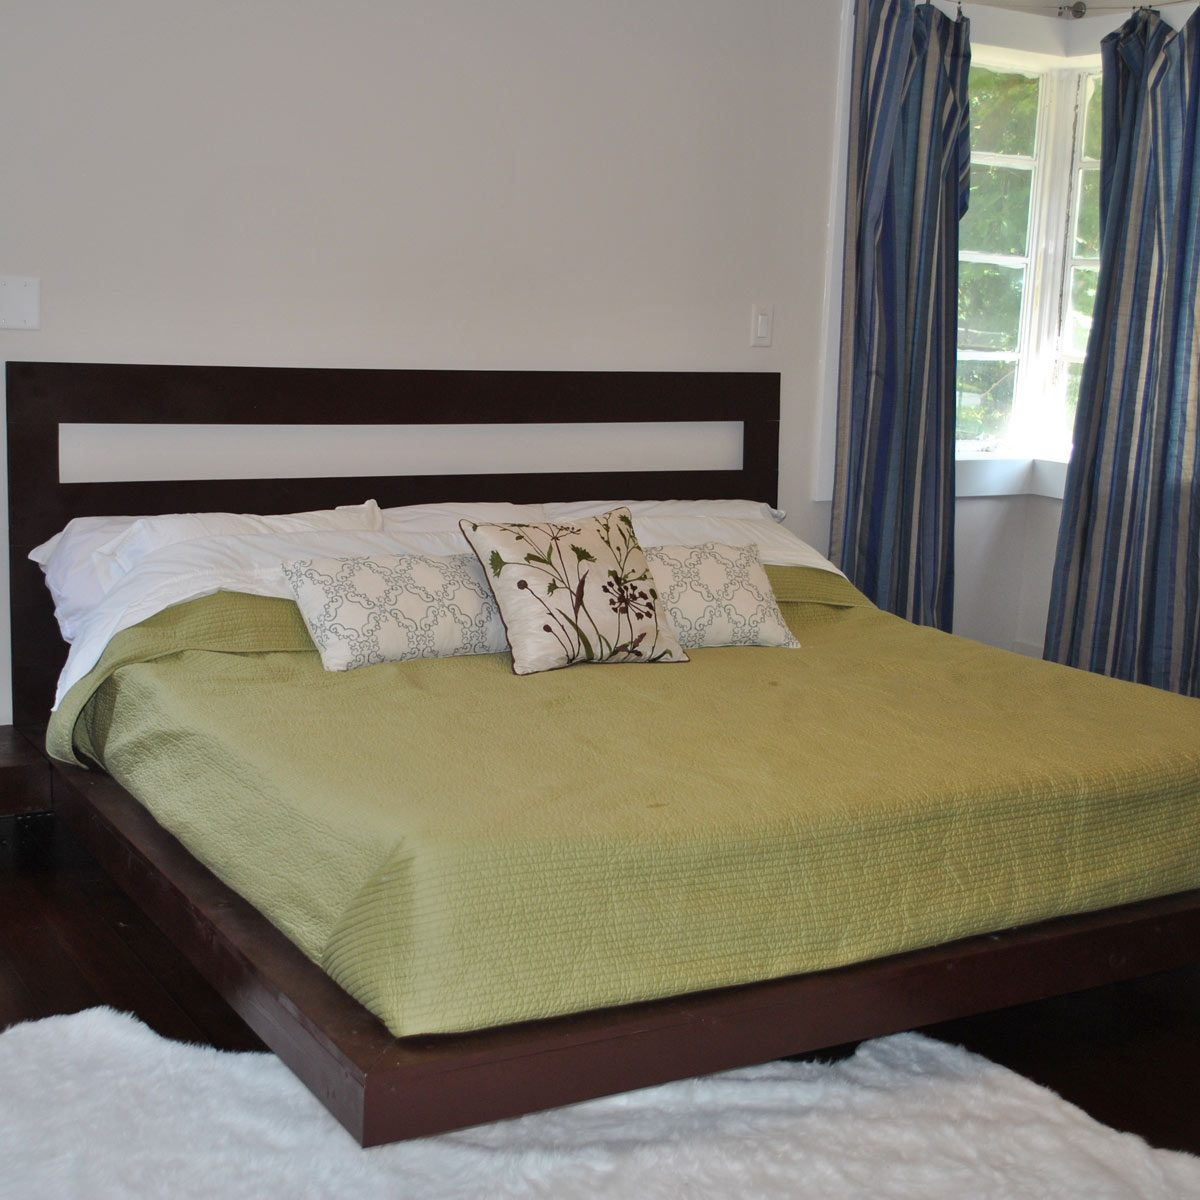 dfh10_floatingbed